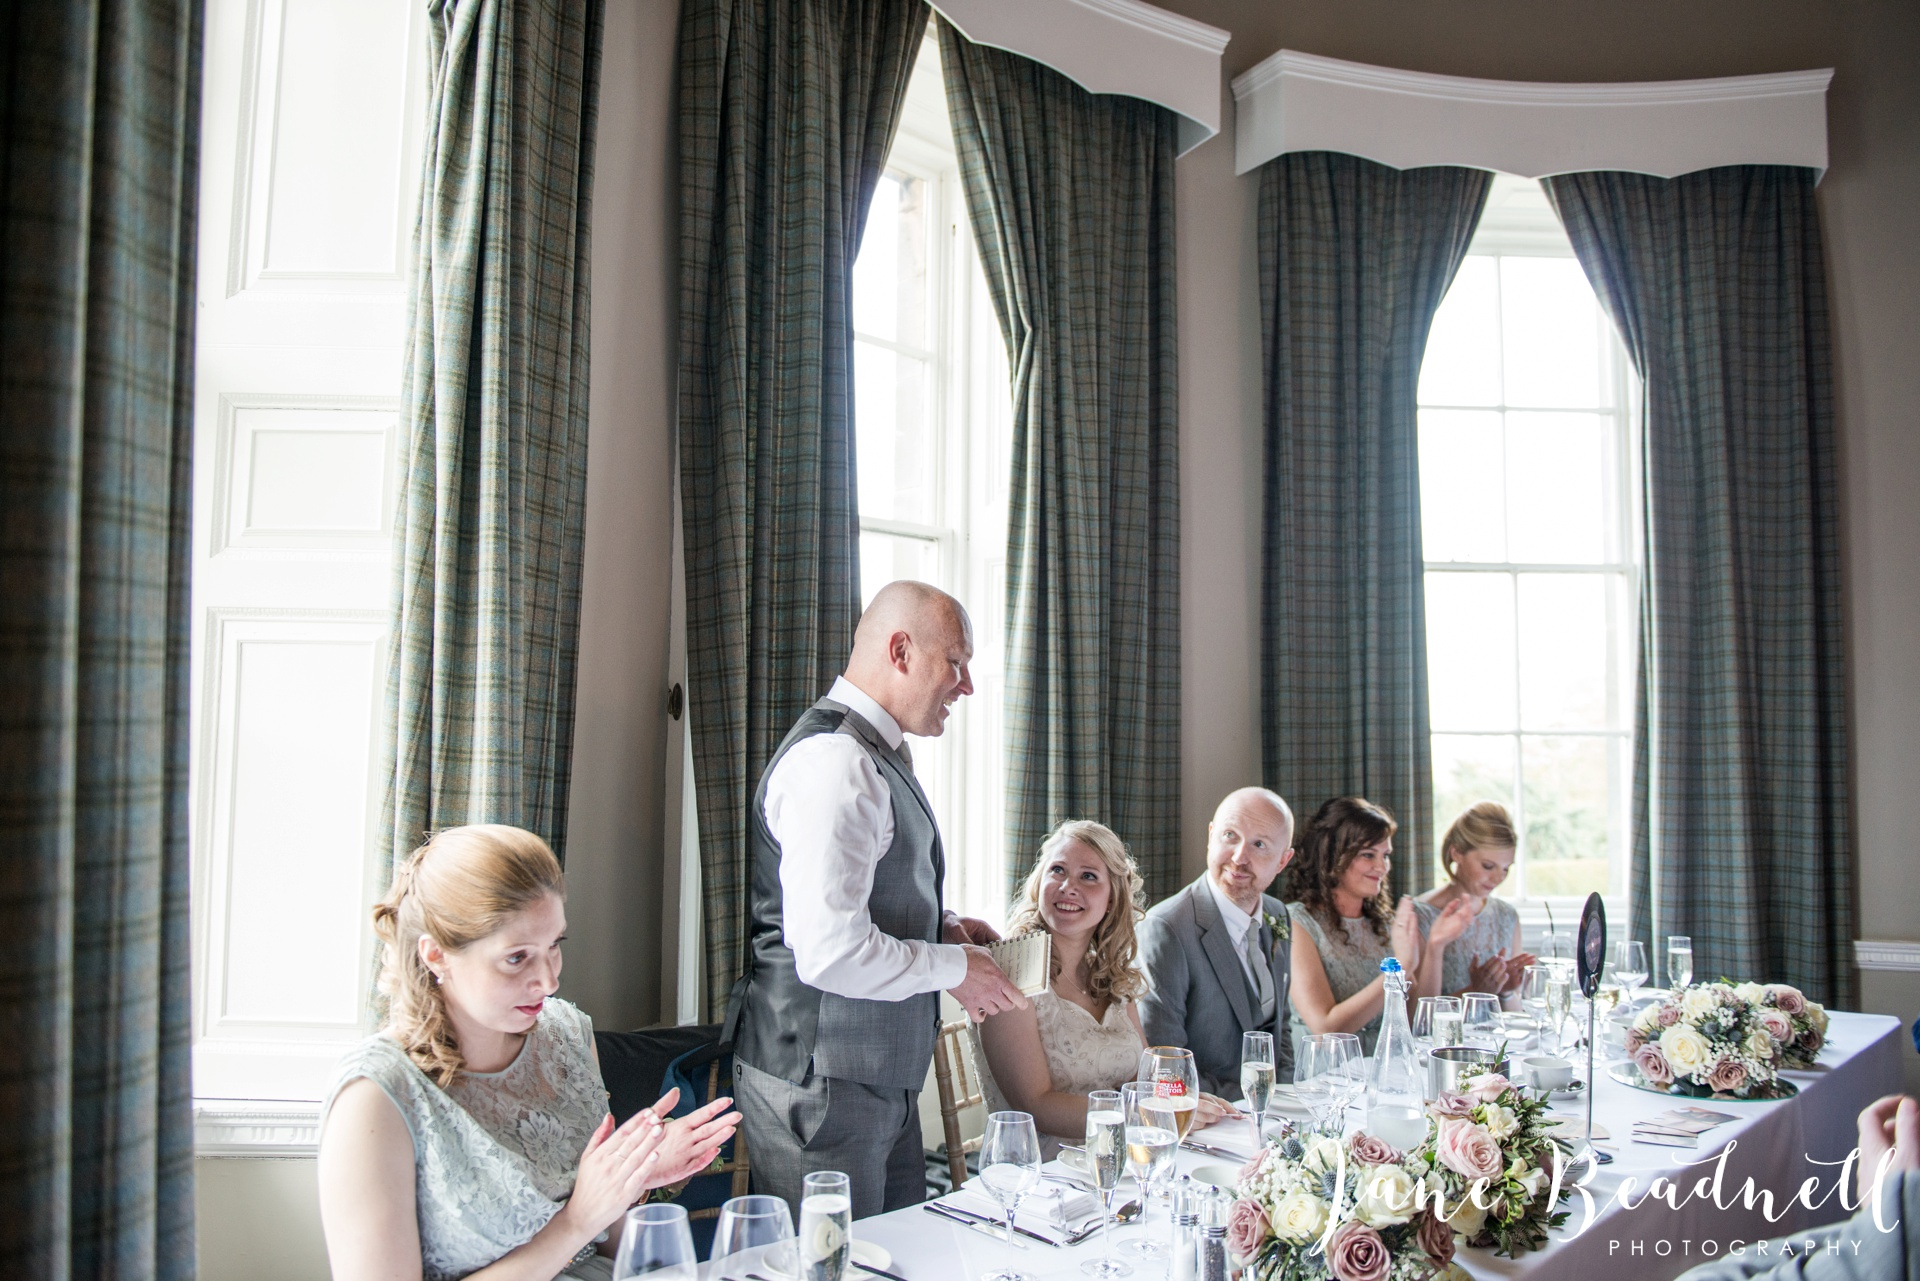 Middleton Lodge wedding photography by fine art wedding photographer Jane Beadnell_0104